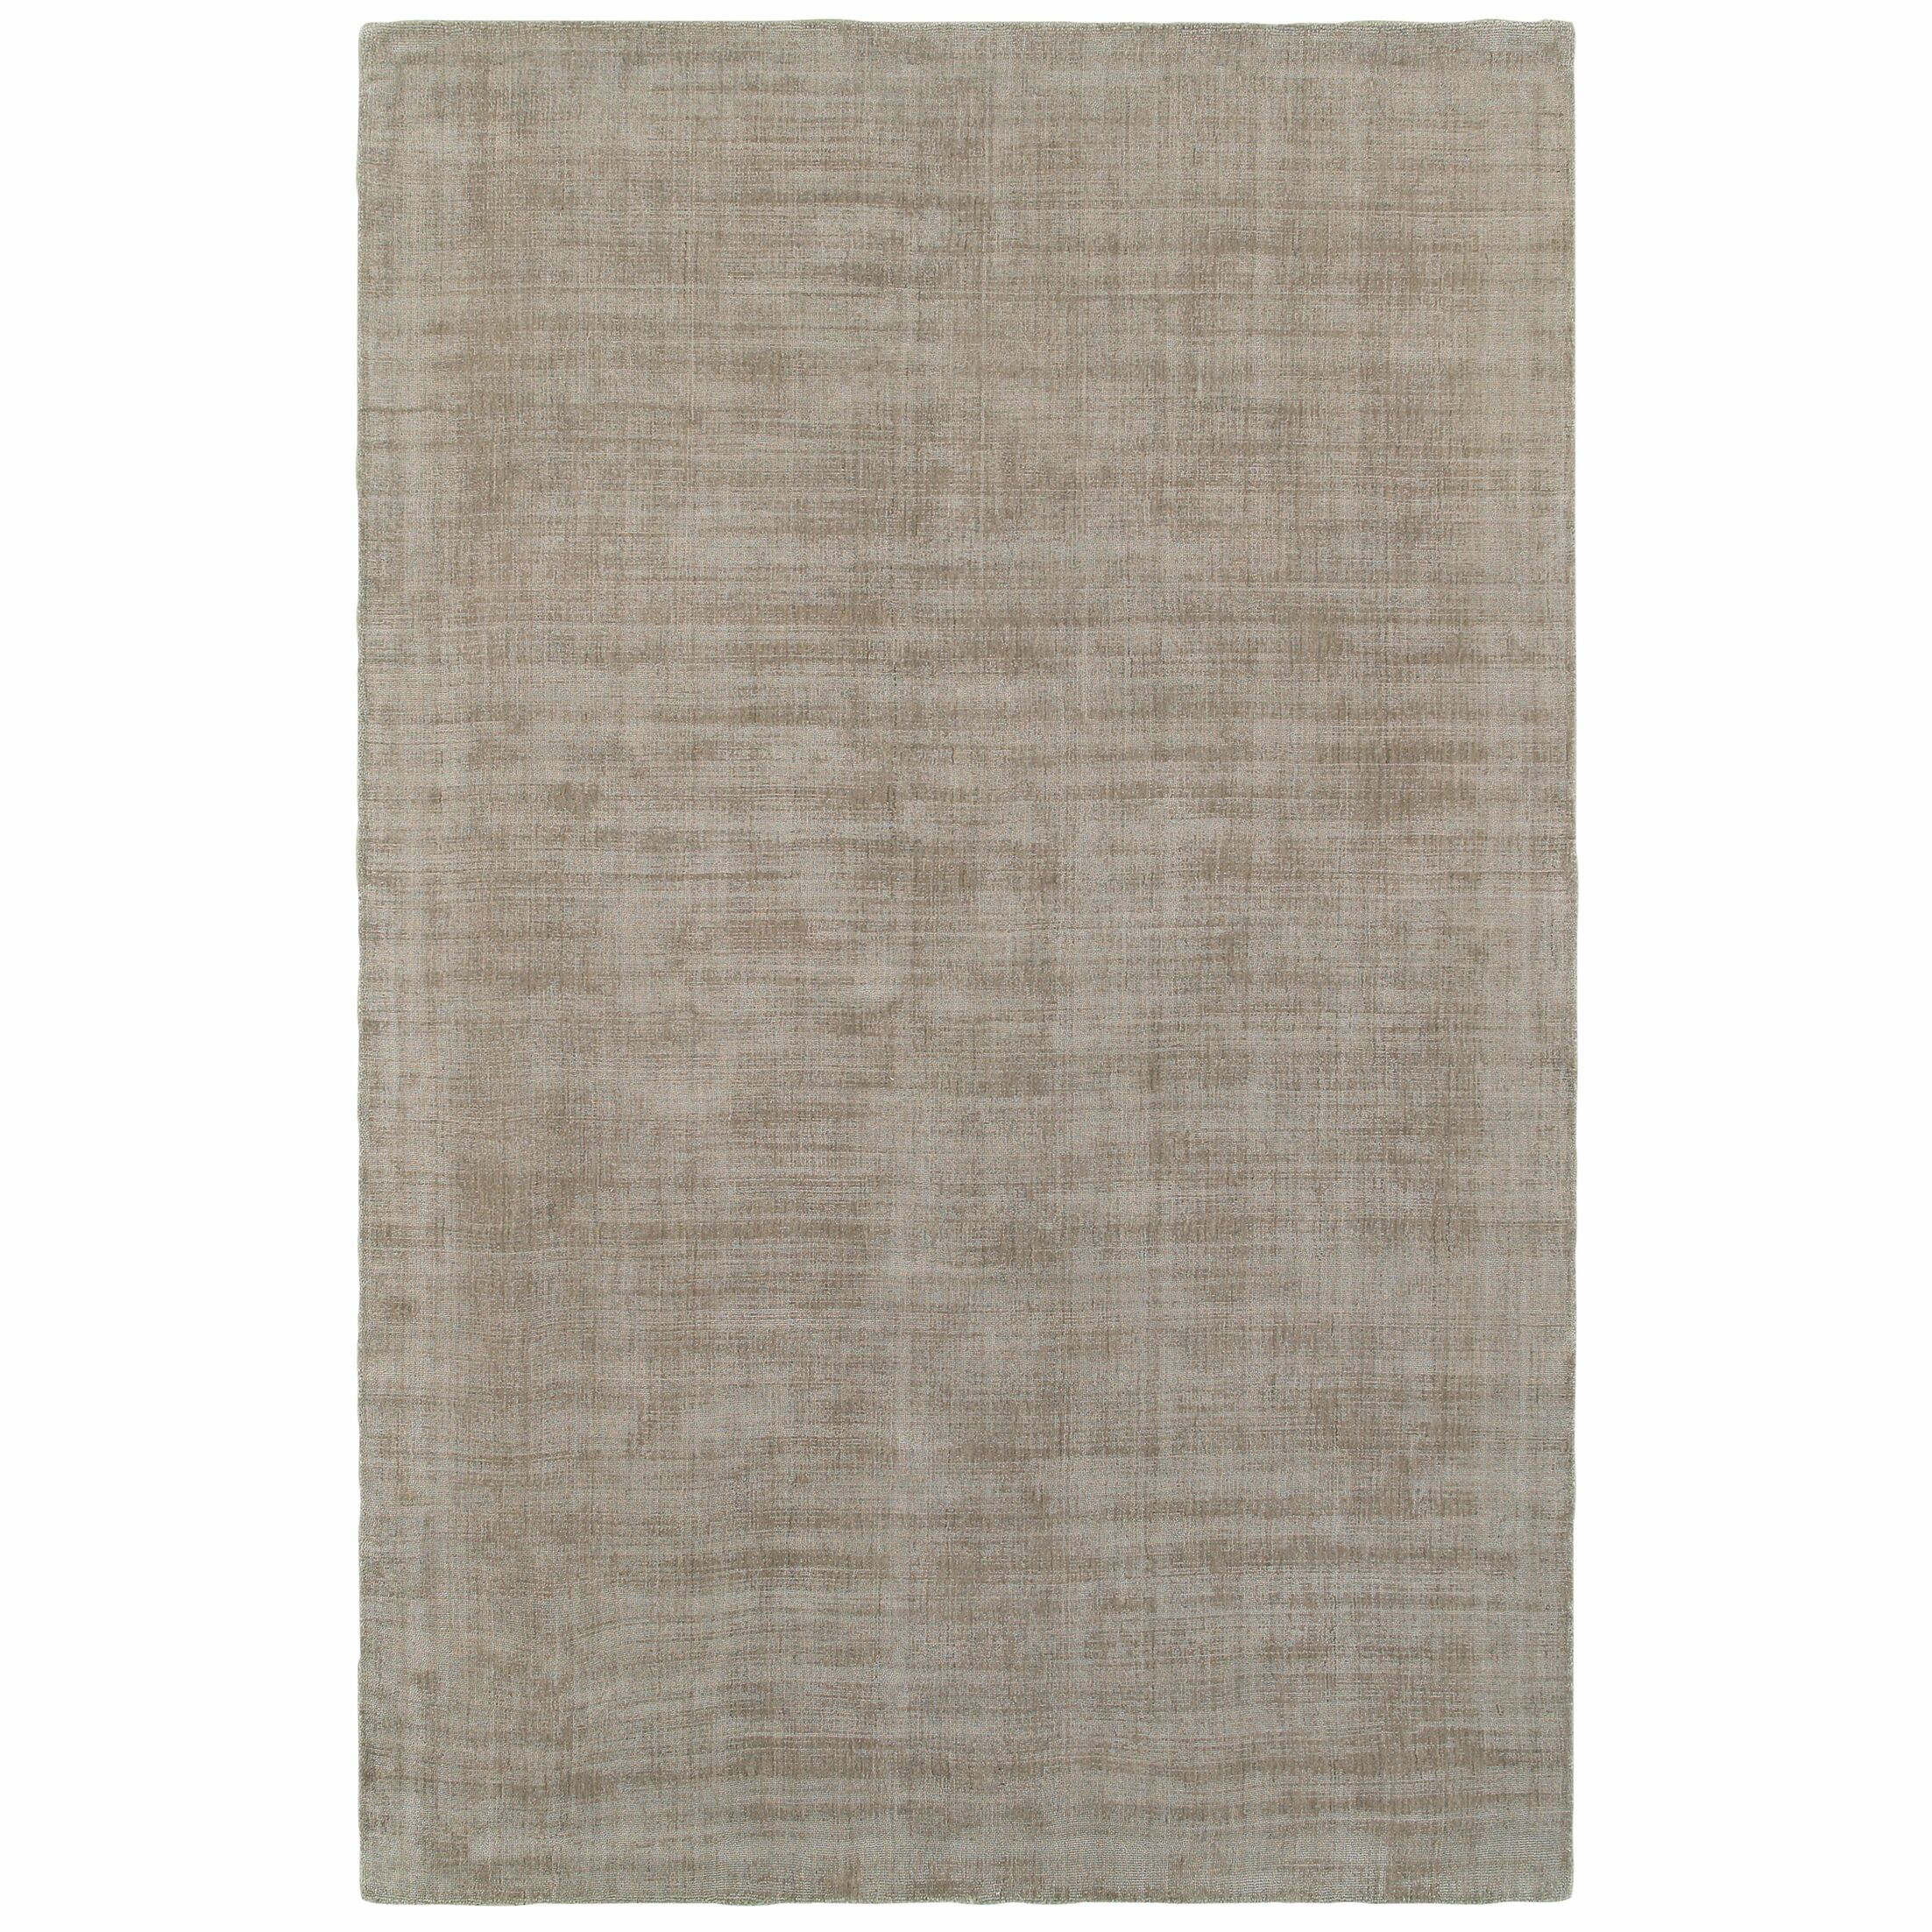 Grimes Plush Hand-Tufted Beige Area Rug Rug Size: Rectangle 5' x 8'